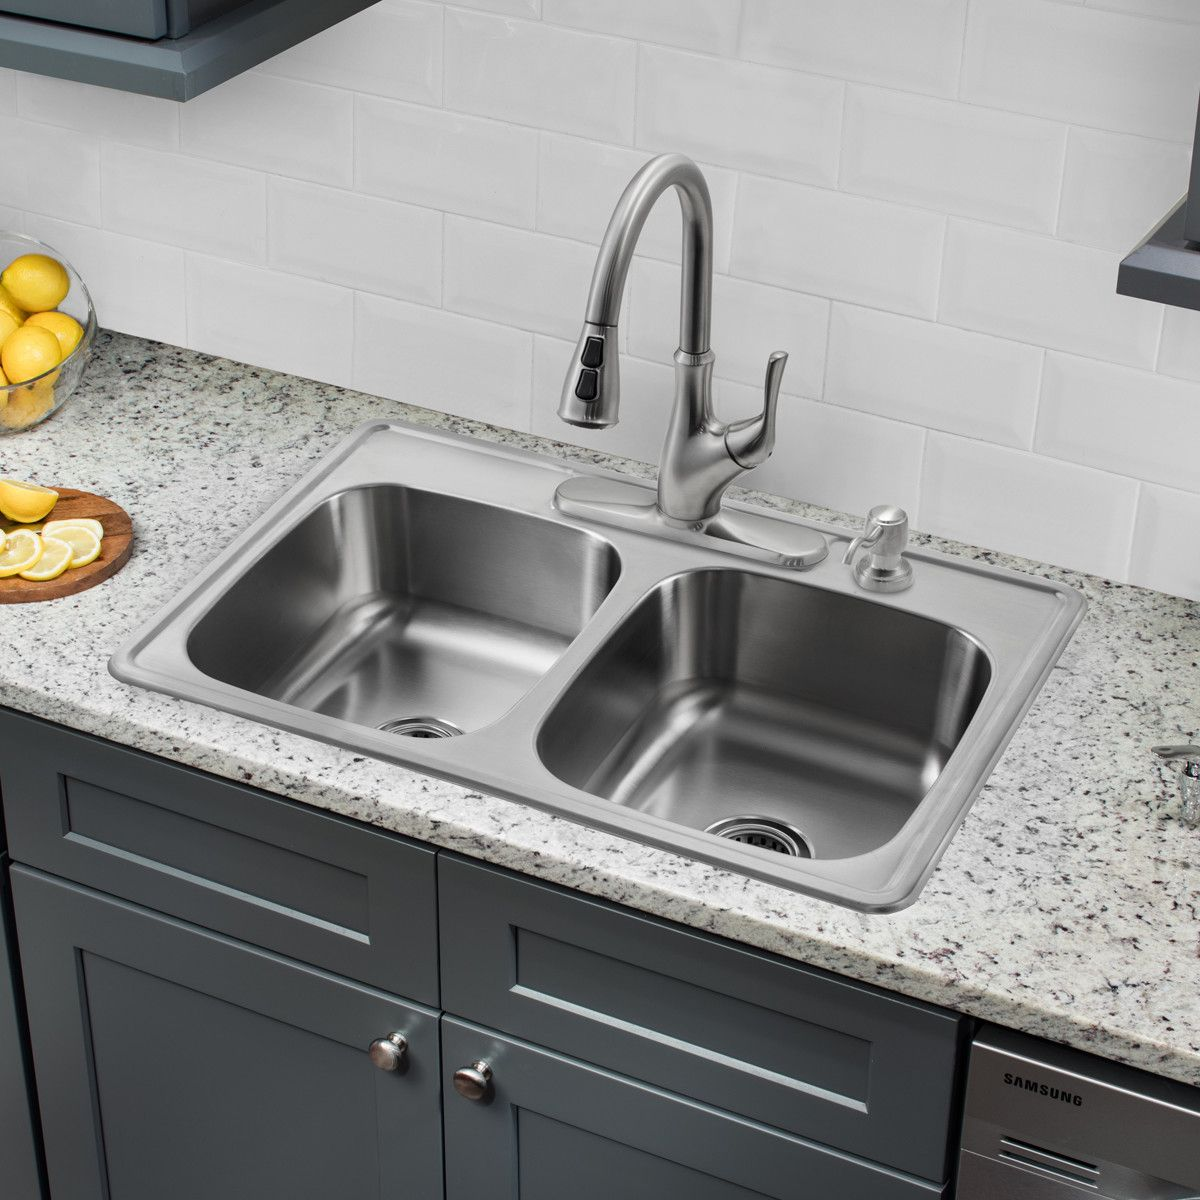 33 Quot L X 22 Quot W Double Bowl Drop In Stainless Steel Kitchen